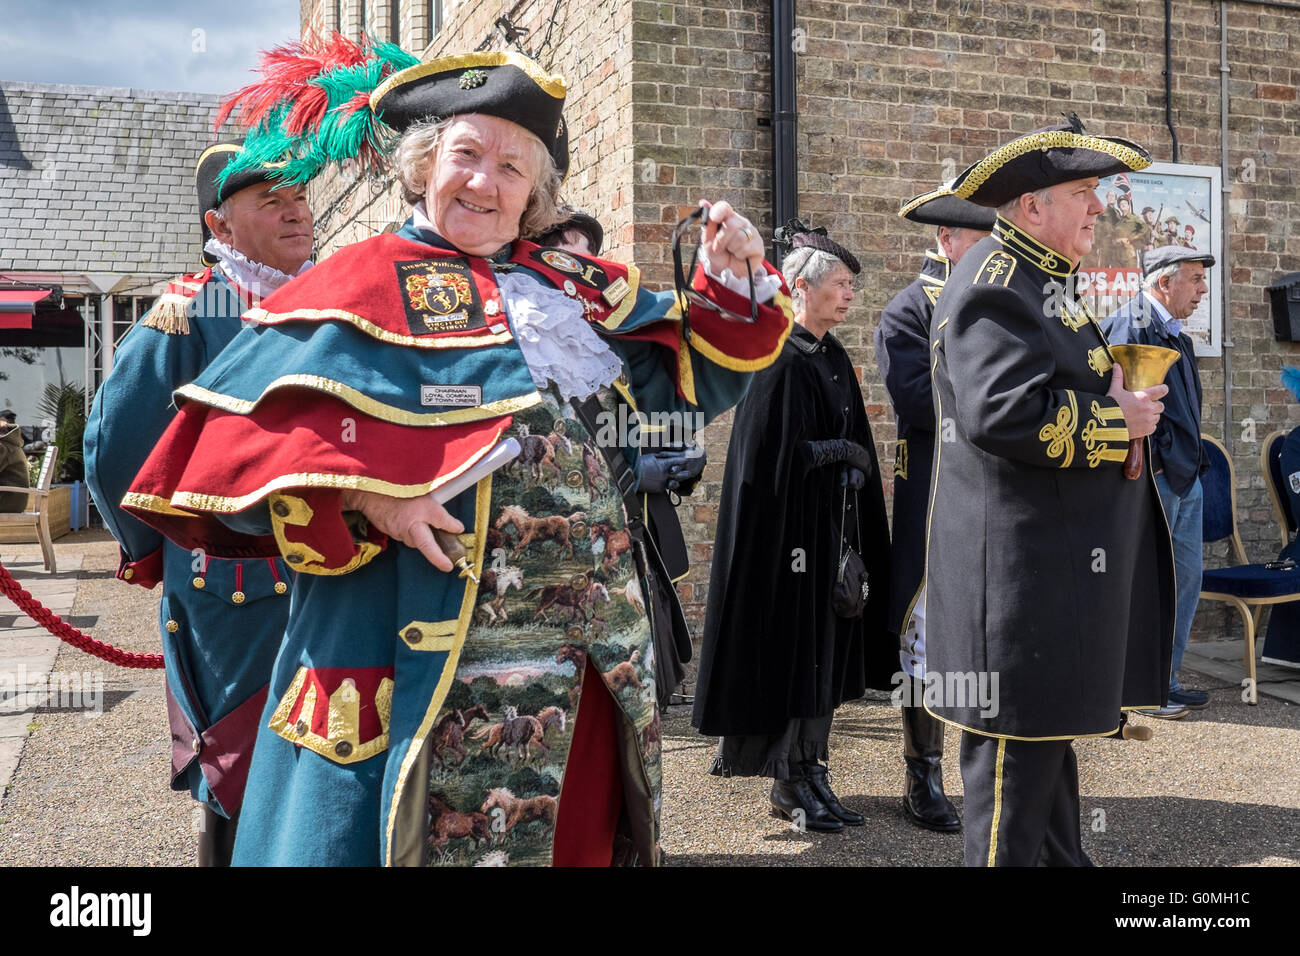 Town crier criers competition at the Ely Eel Festival.  The lovely costumes tri-cornered hat tri corn traditional - Stock Image